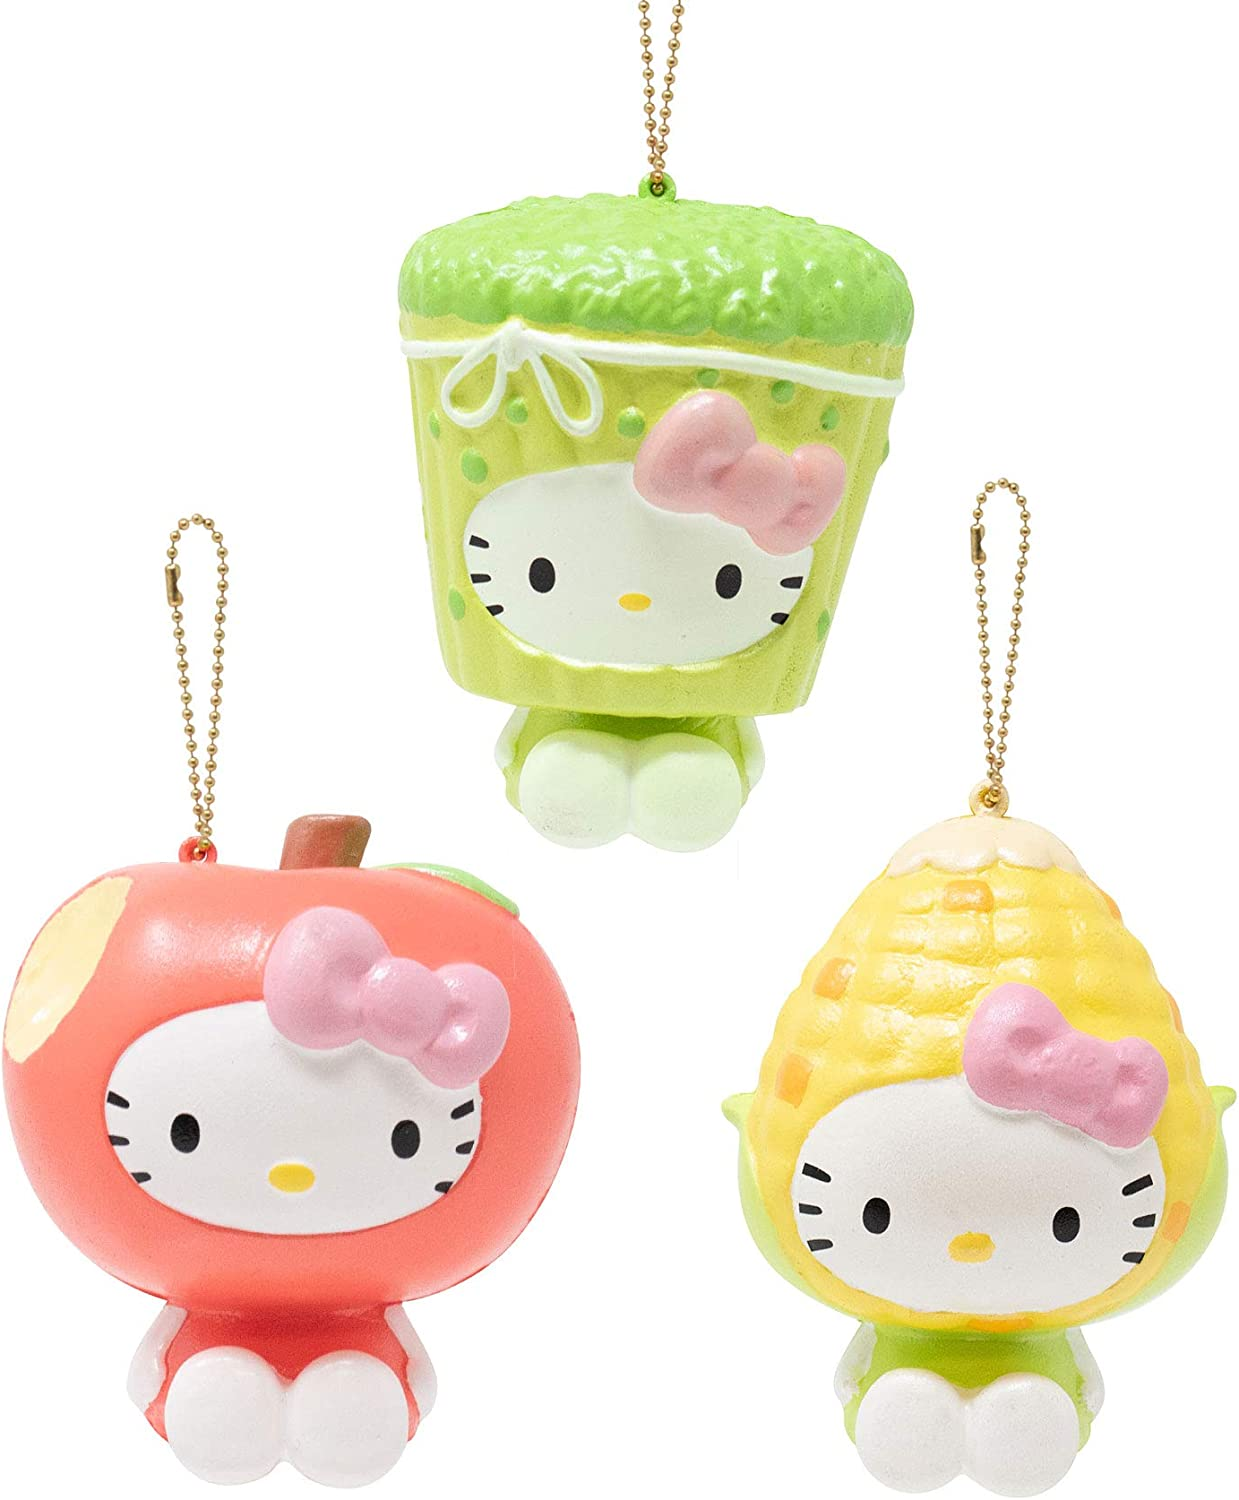 Sanrio Hello Kitty Fruit and Veggie Slow Rising Cute Squishy Toy Keychain (Apple, Corn, Asparagus, 3 Piece Set) Birthday Gifts, Party Favors, Stress Balls, Prop Decoration for Kids, Boys, Girls